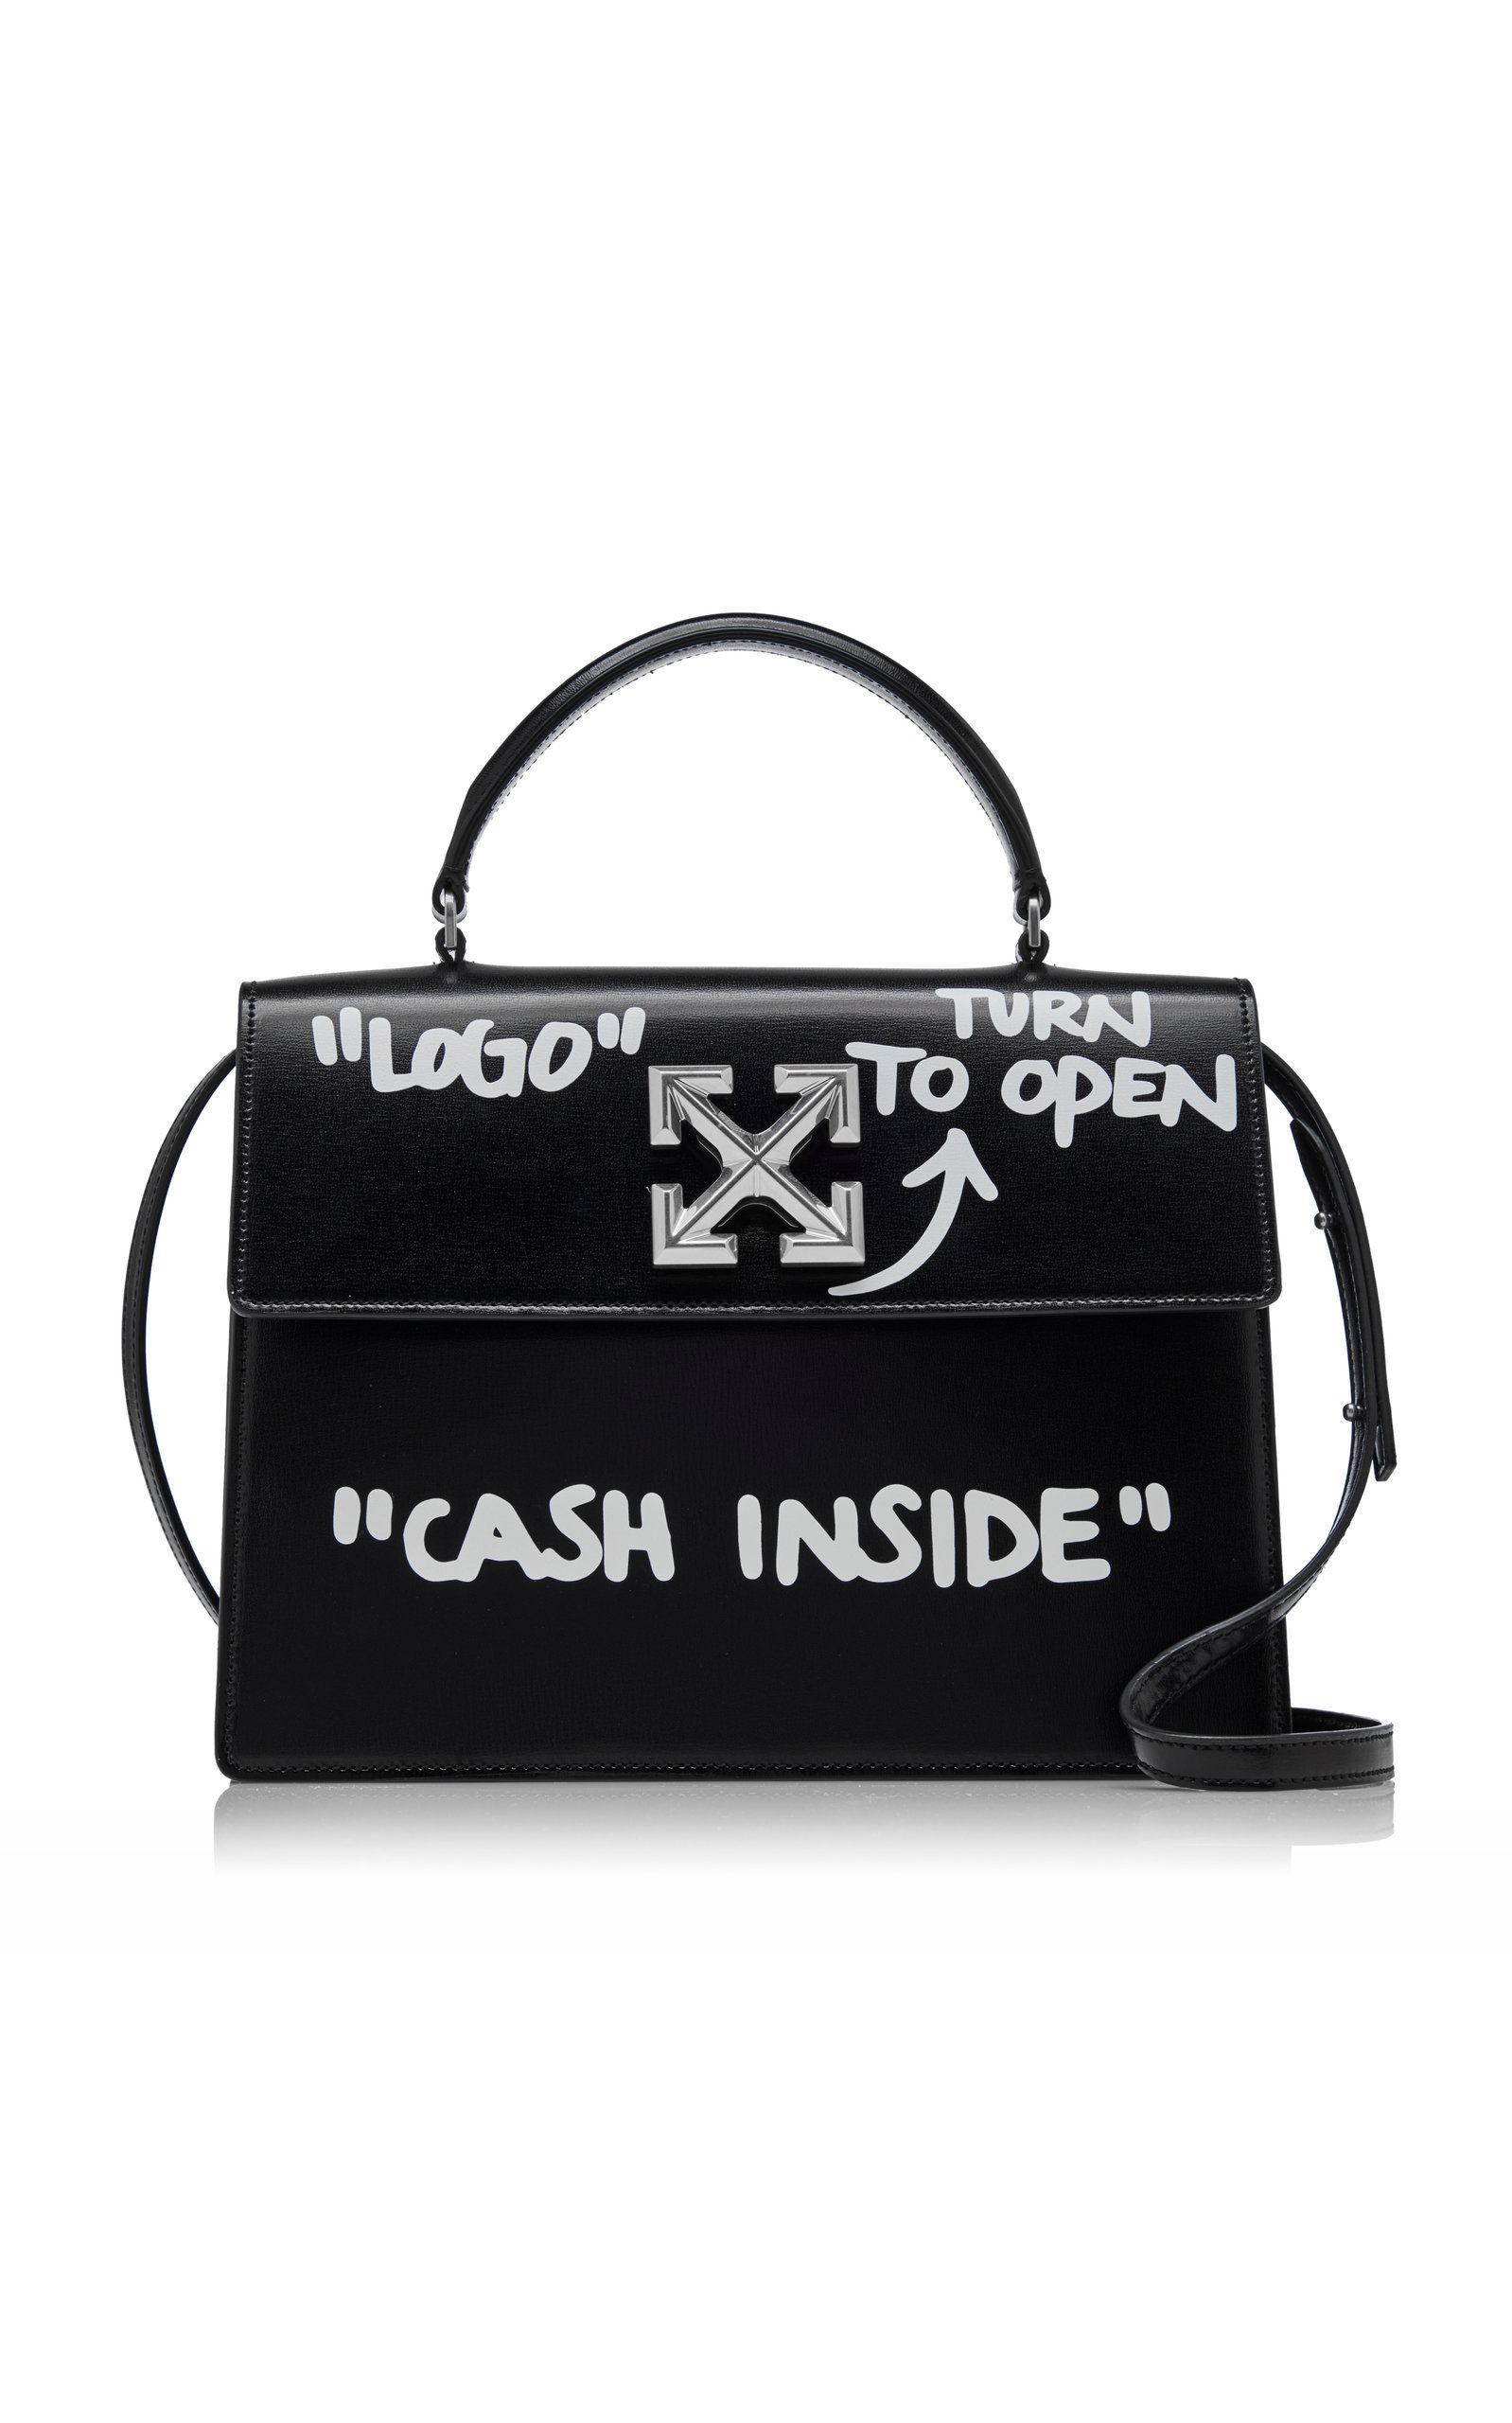 Jitney 2.8 Cash Inside Leather Bag